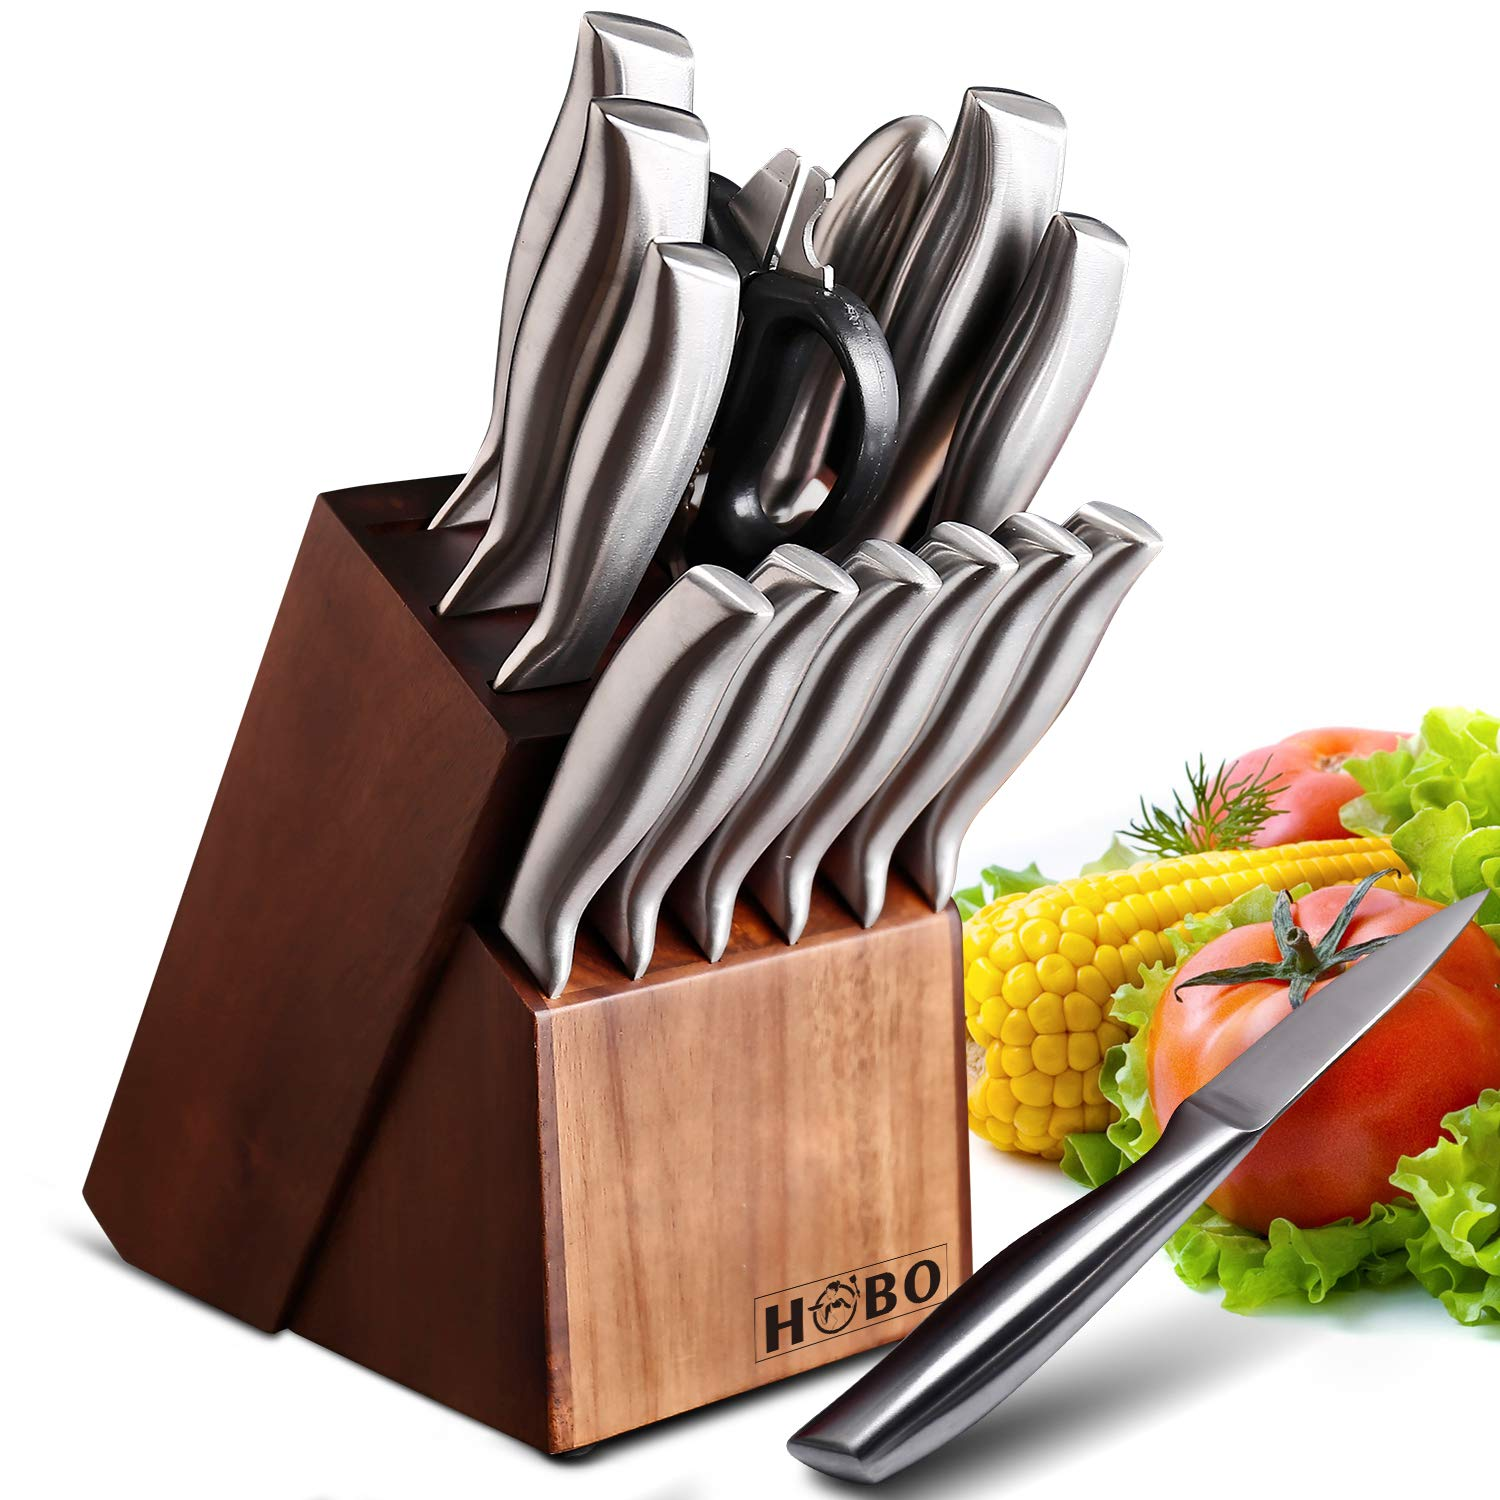 HOBO 2019 Kitchen 14-Piece German Professional Chef Knife Set with Wooden Block, Premium Anti-Rust Cutlery Scissors and Sharpener, Silver by HOBO